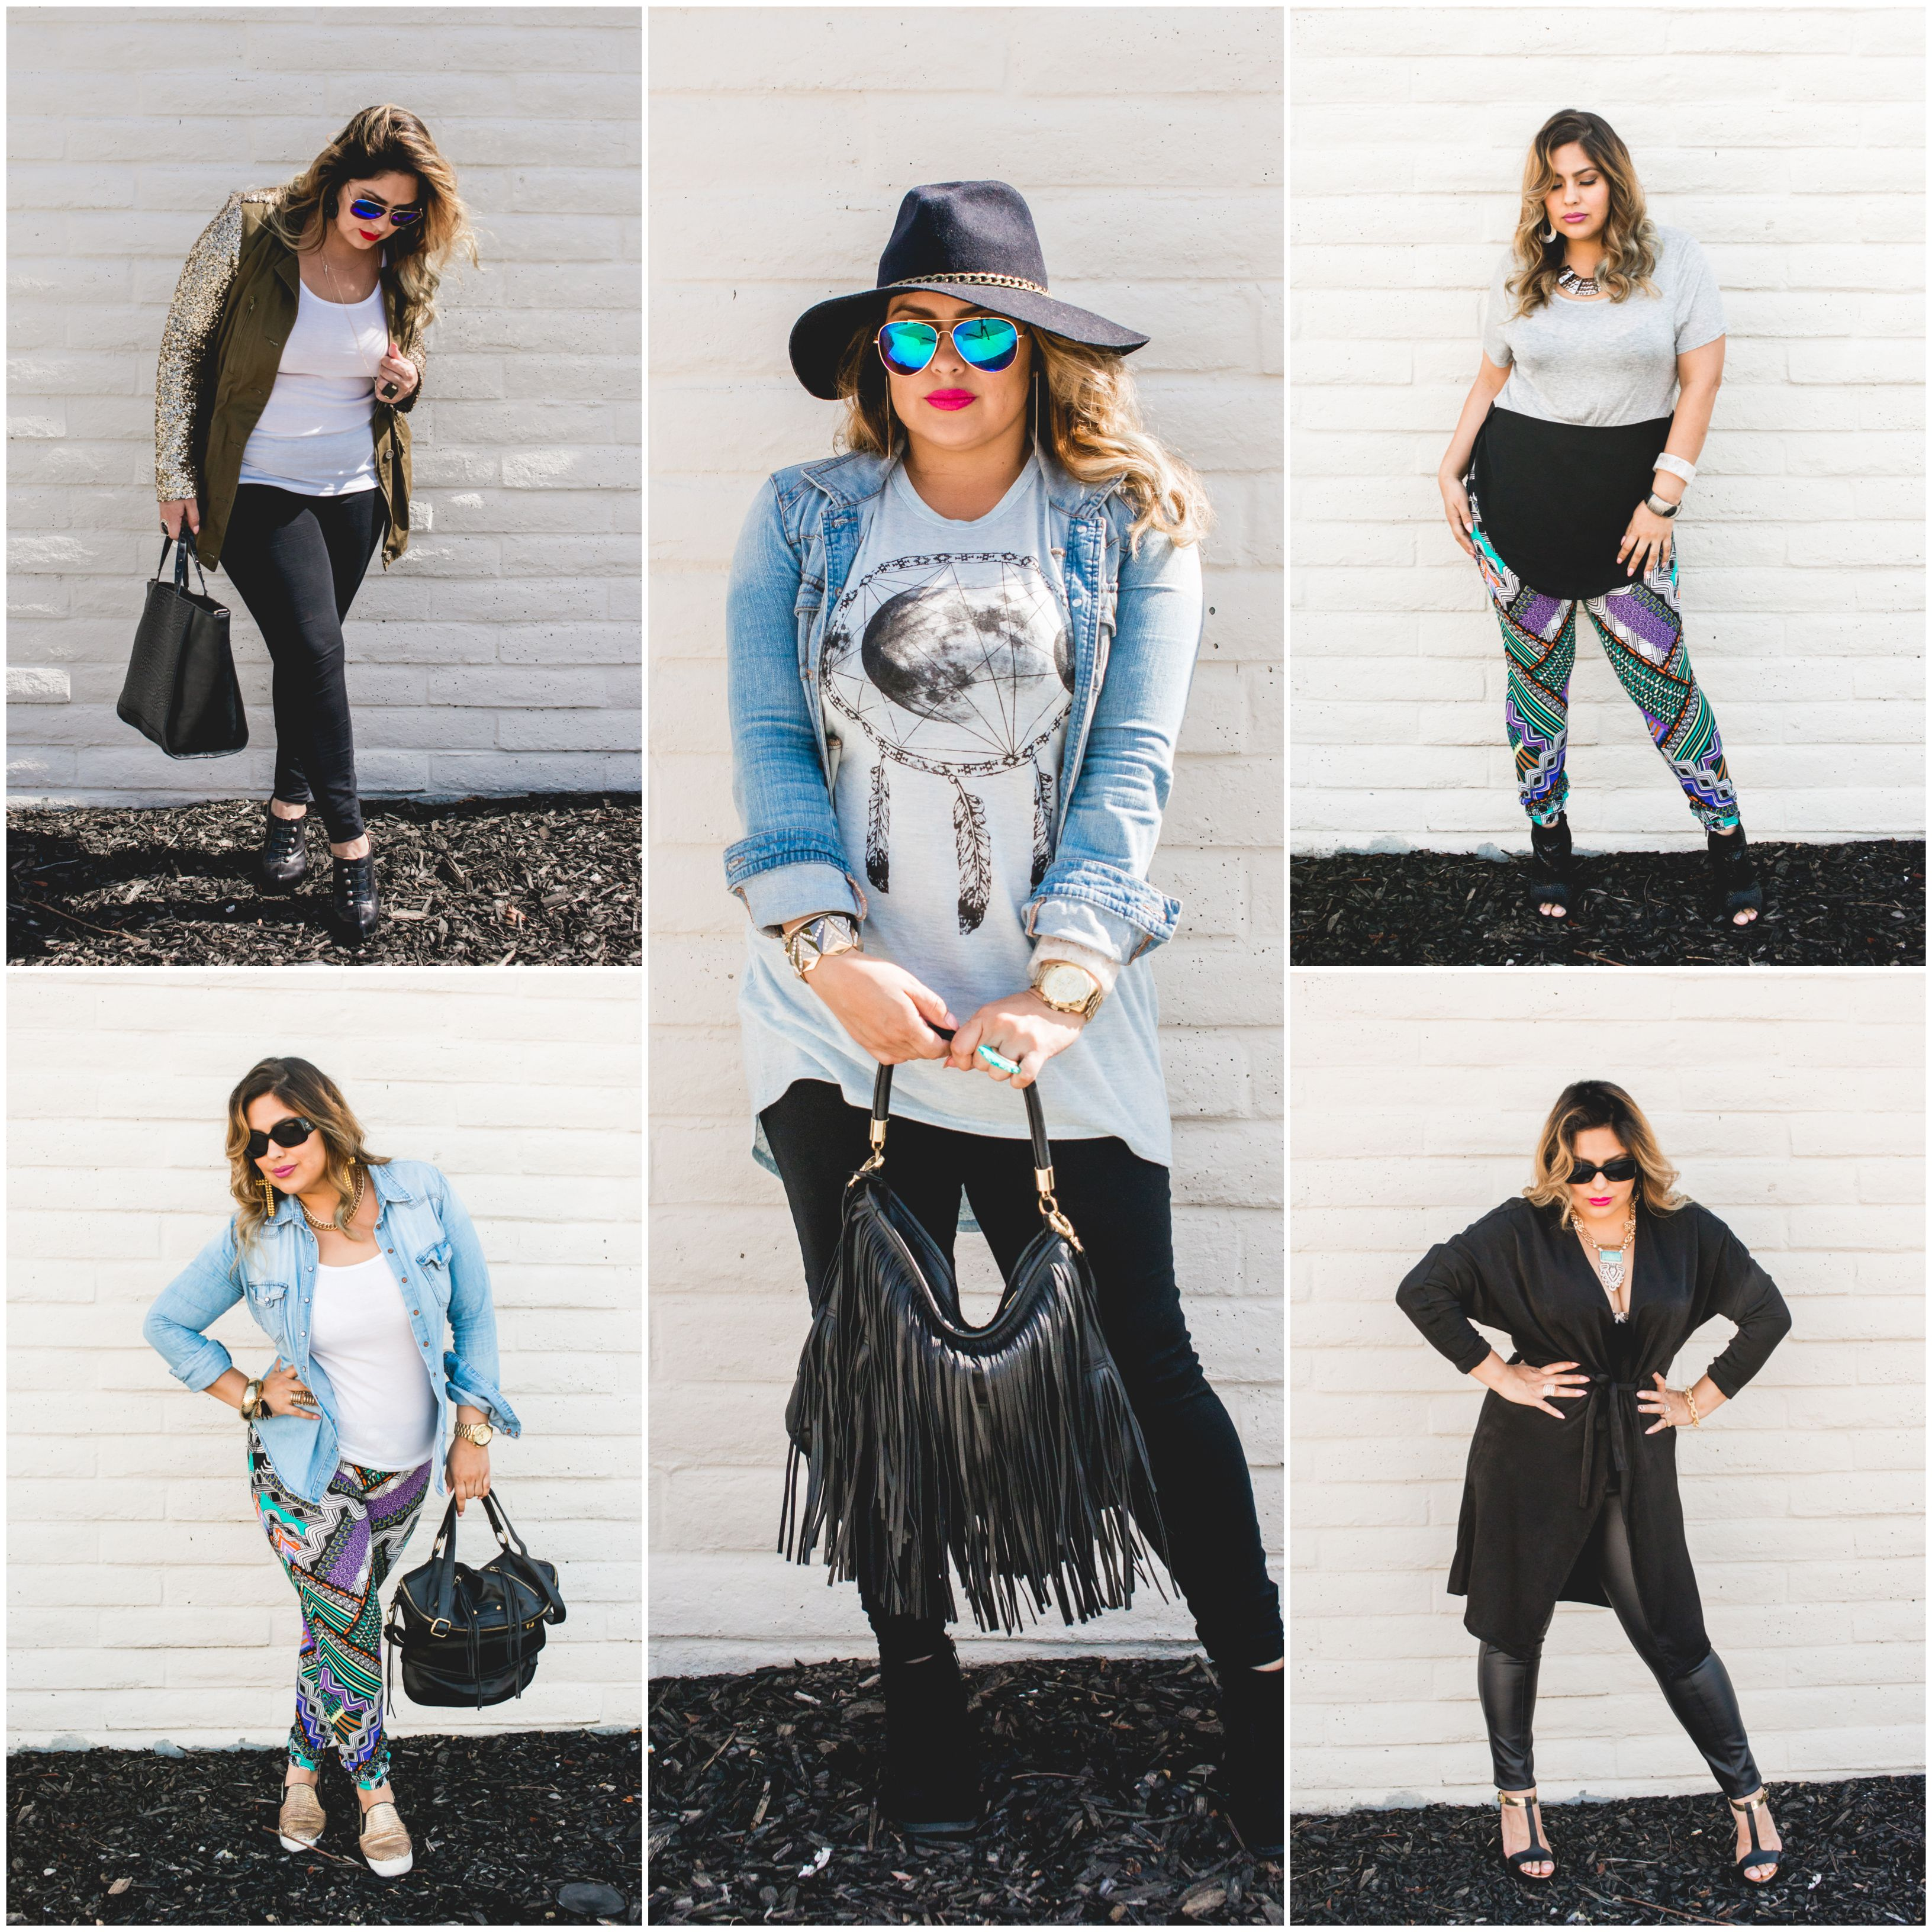 5 WAYS TO WEAR THE HELL OUT OF THOSE STRETCHY PANTS!